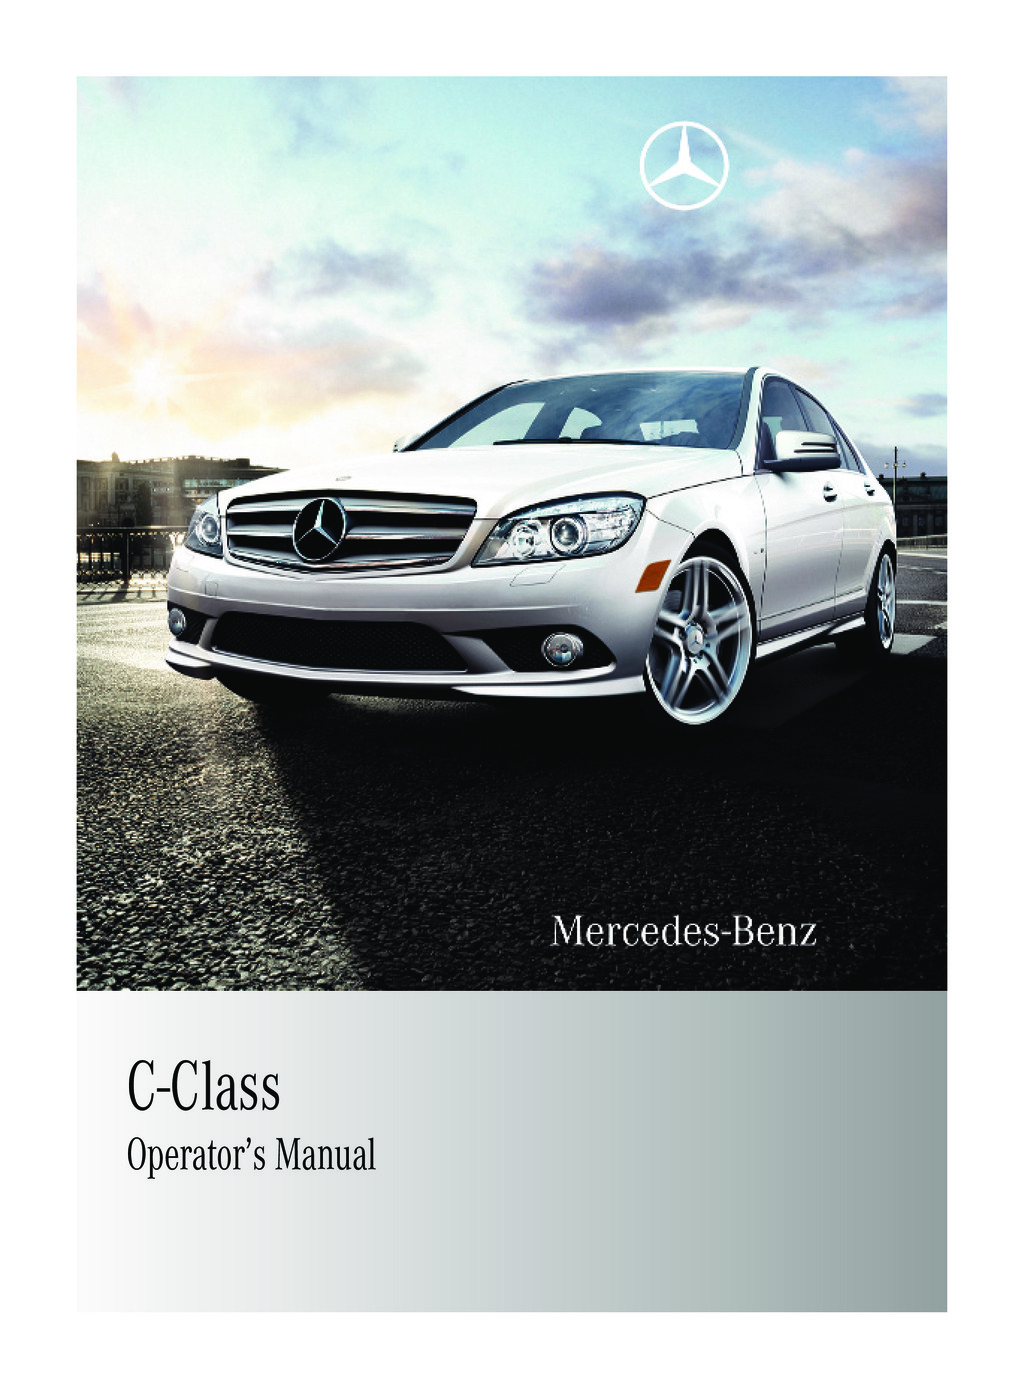 2010 Mercedes-Benz C Class owners manual